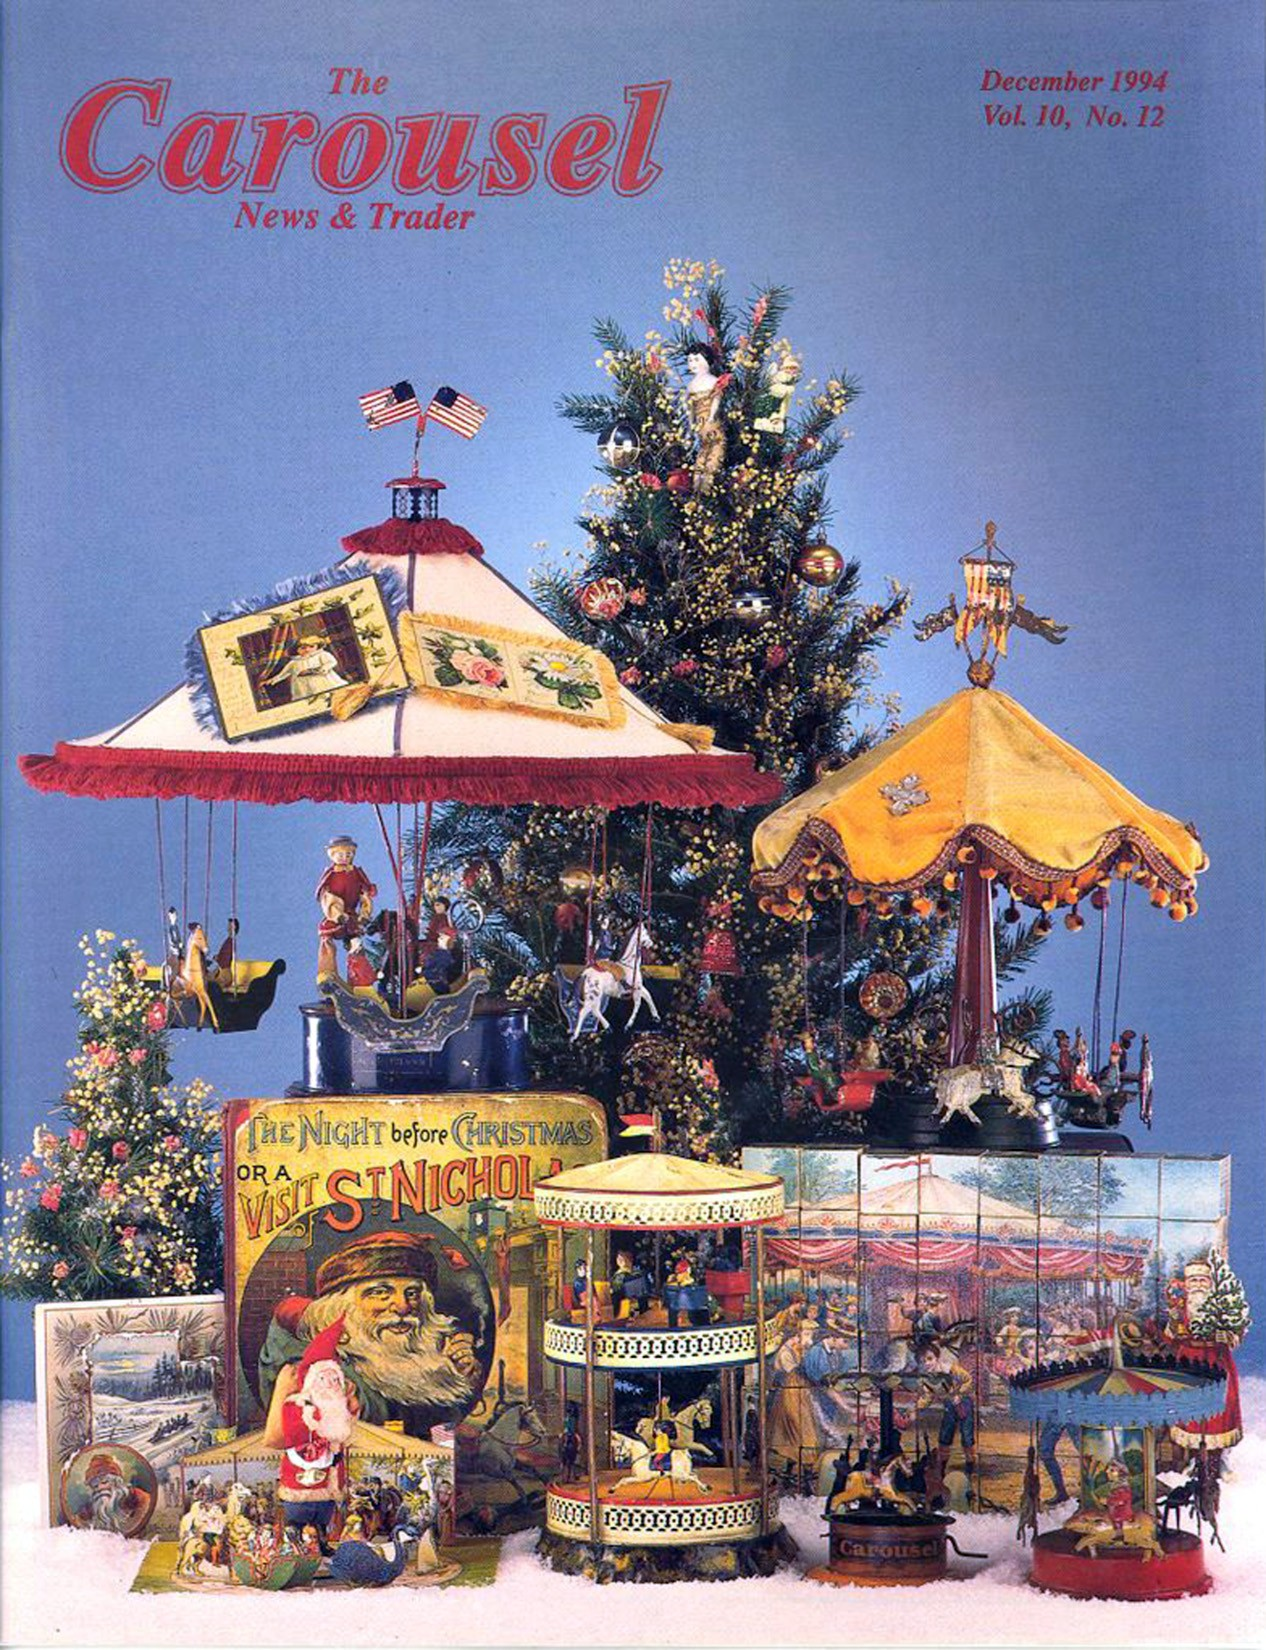 Issue No. 12, Vol. 10 – December 1994